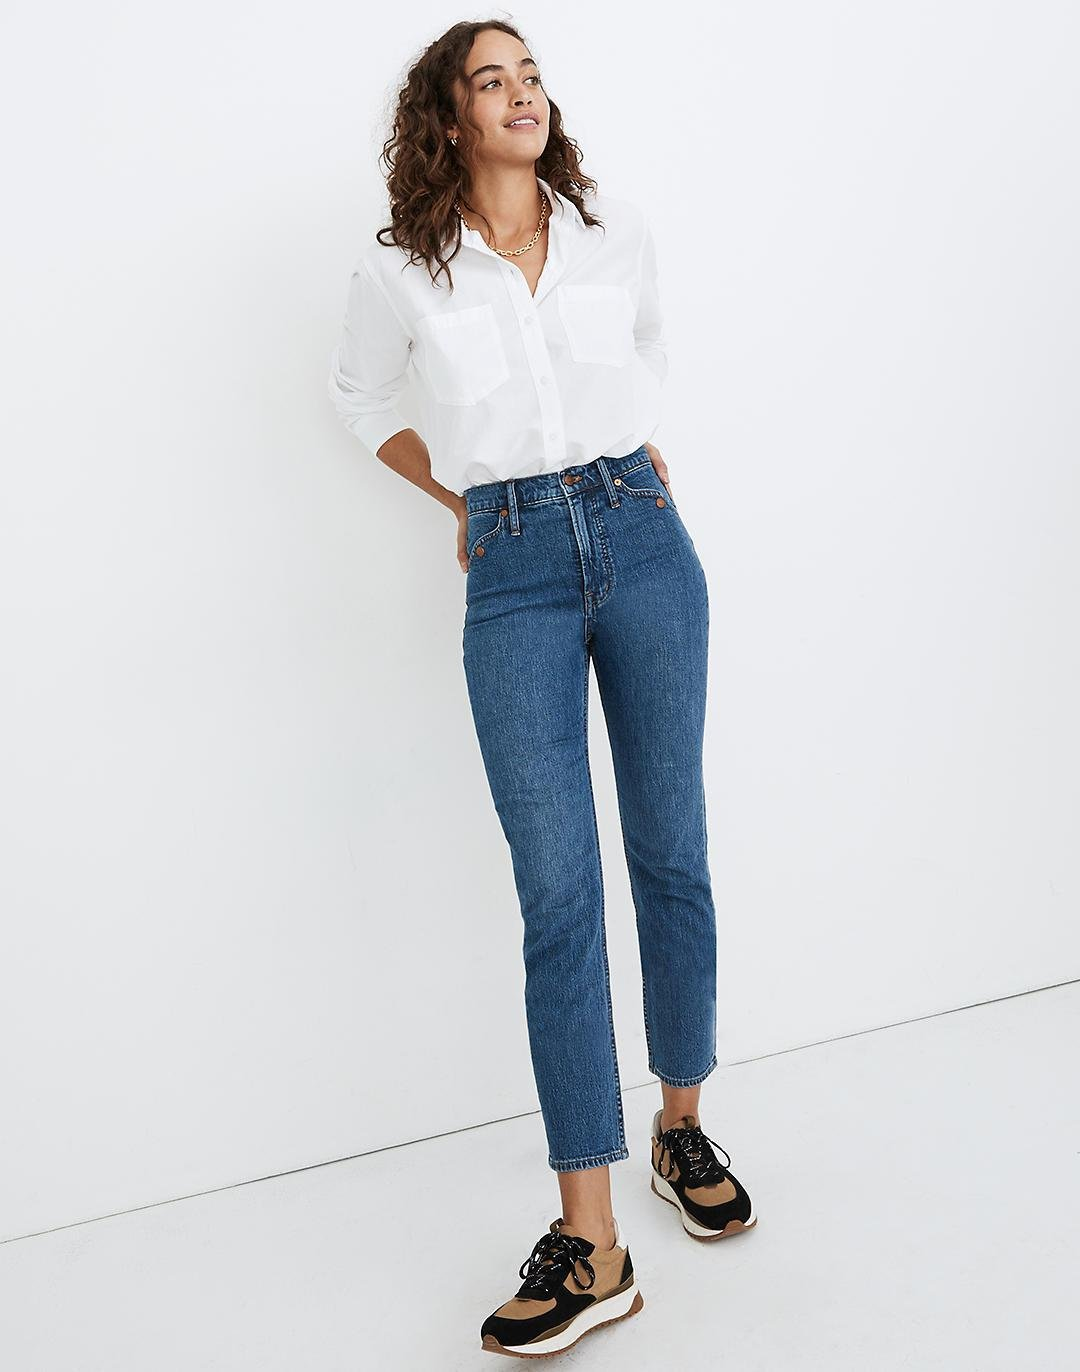 The Perfect Vintage Jean: Western Pocket Edition